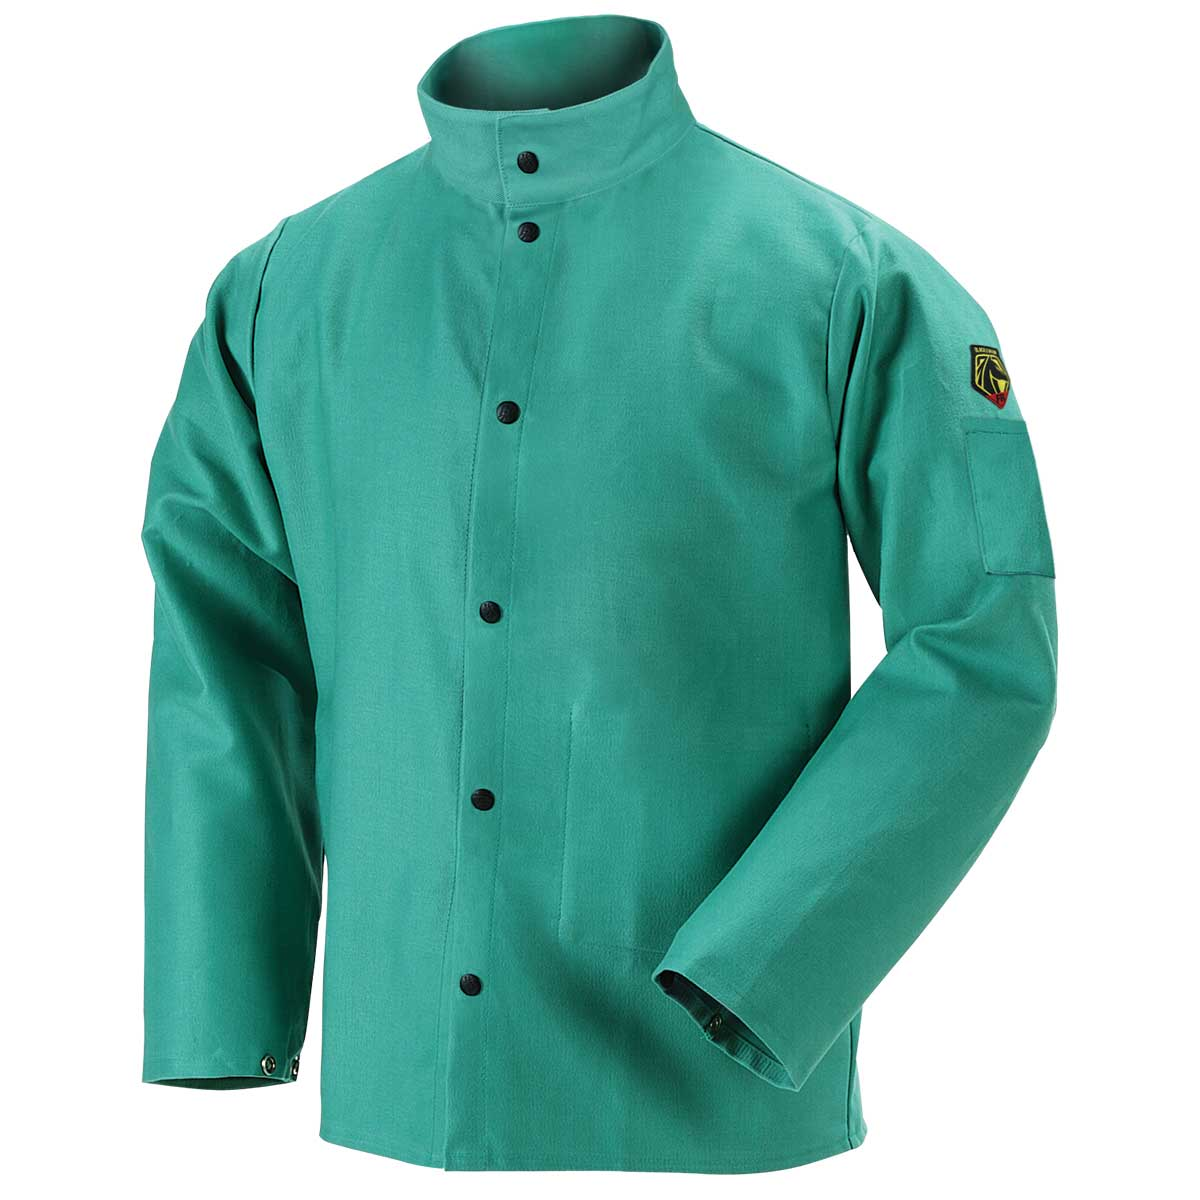 "Black Stallion F9-30C 30"" 9oz. Green FR Cotton Welding Jacket, X-Large"